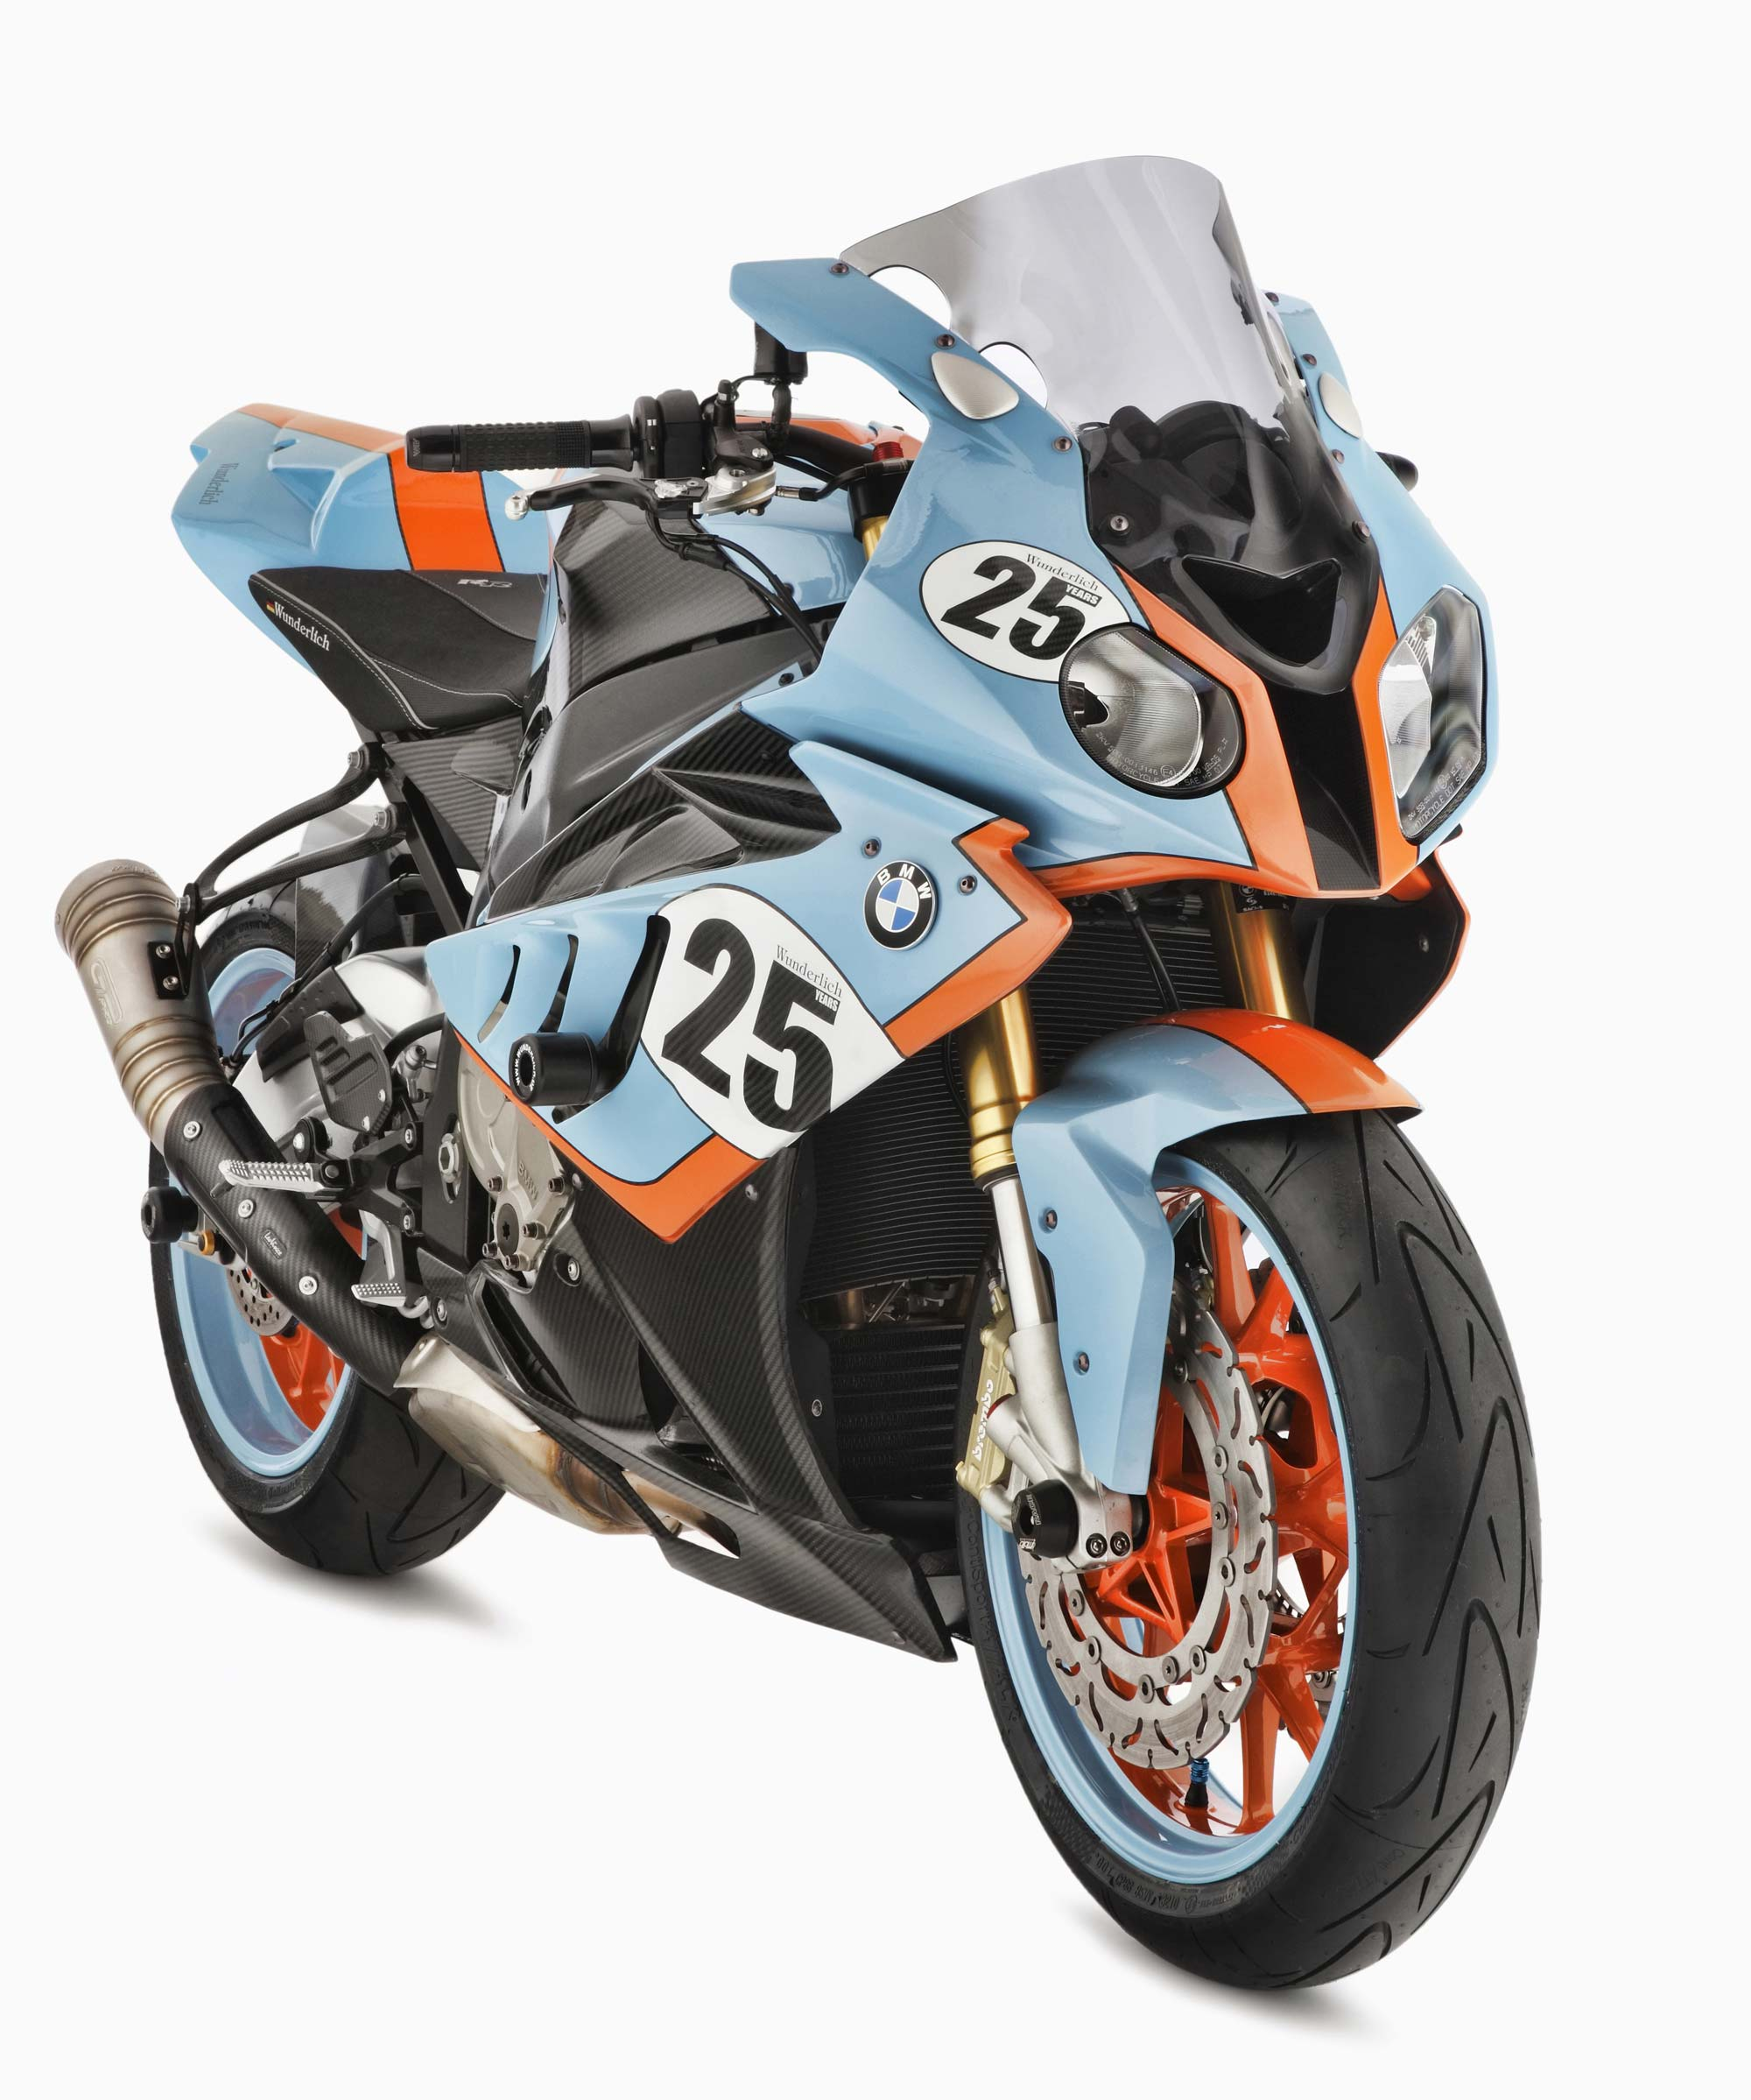 Wunderlich Curar 234 The Gulf Oil Bmw S1000rr Asphalt